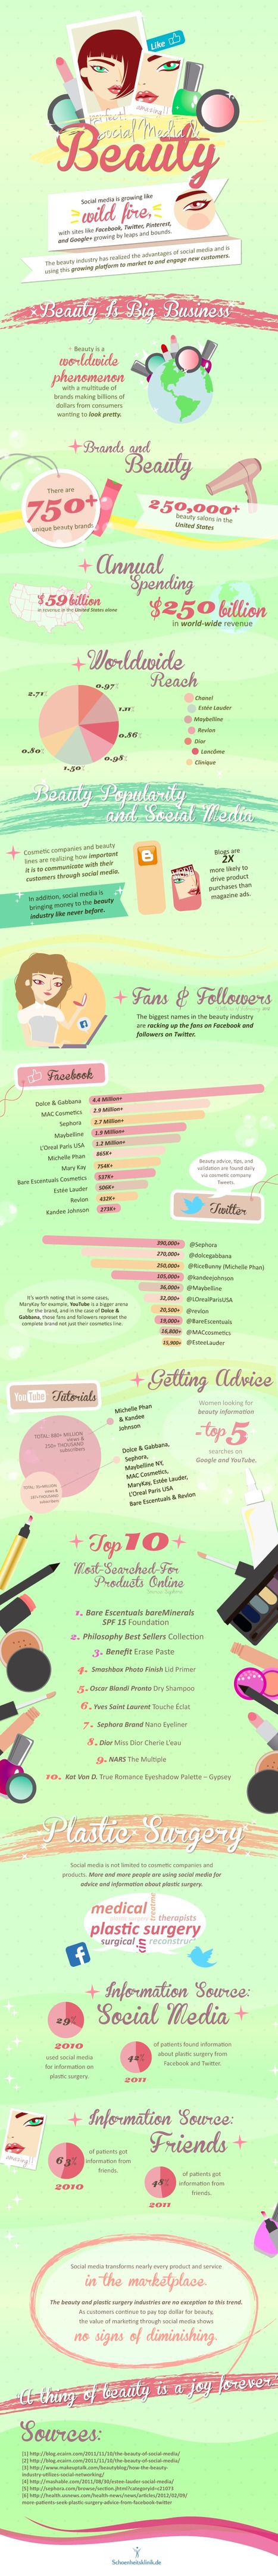 The Beauty Of Social Media [INFOGRAPHIC]   Social media and education   Scoop.it